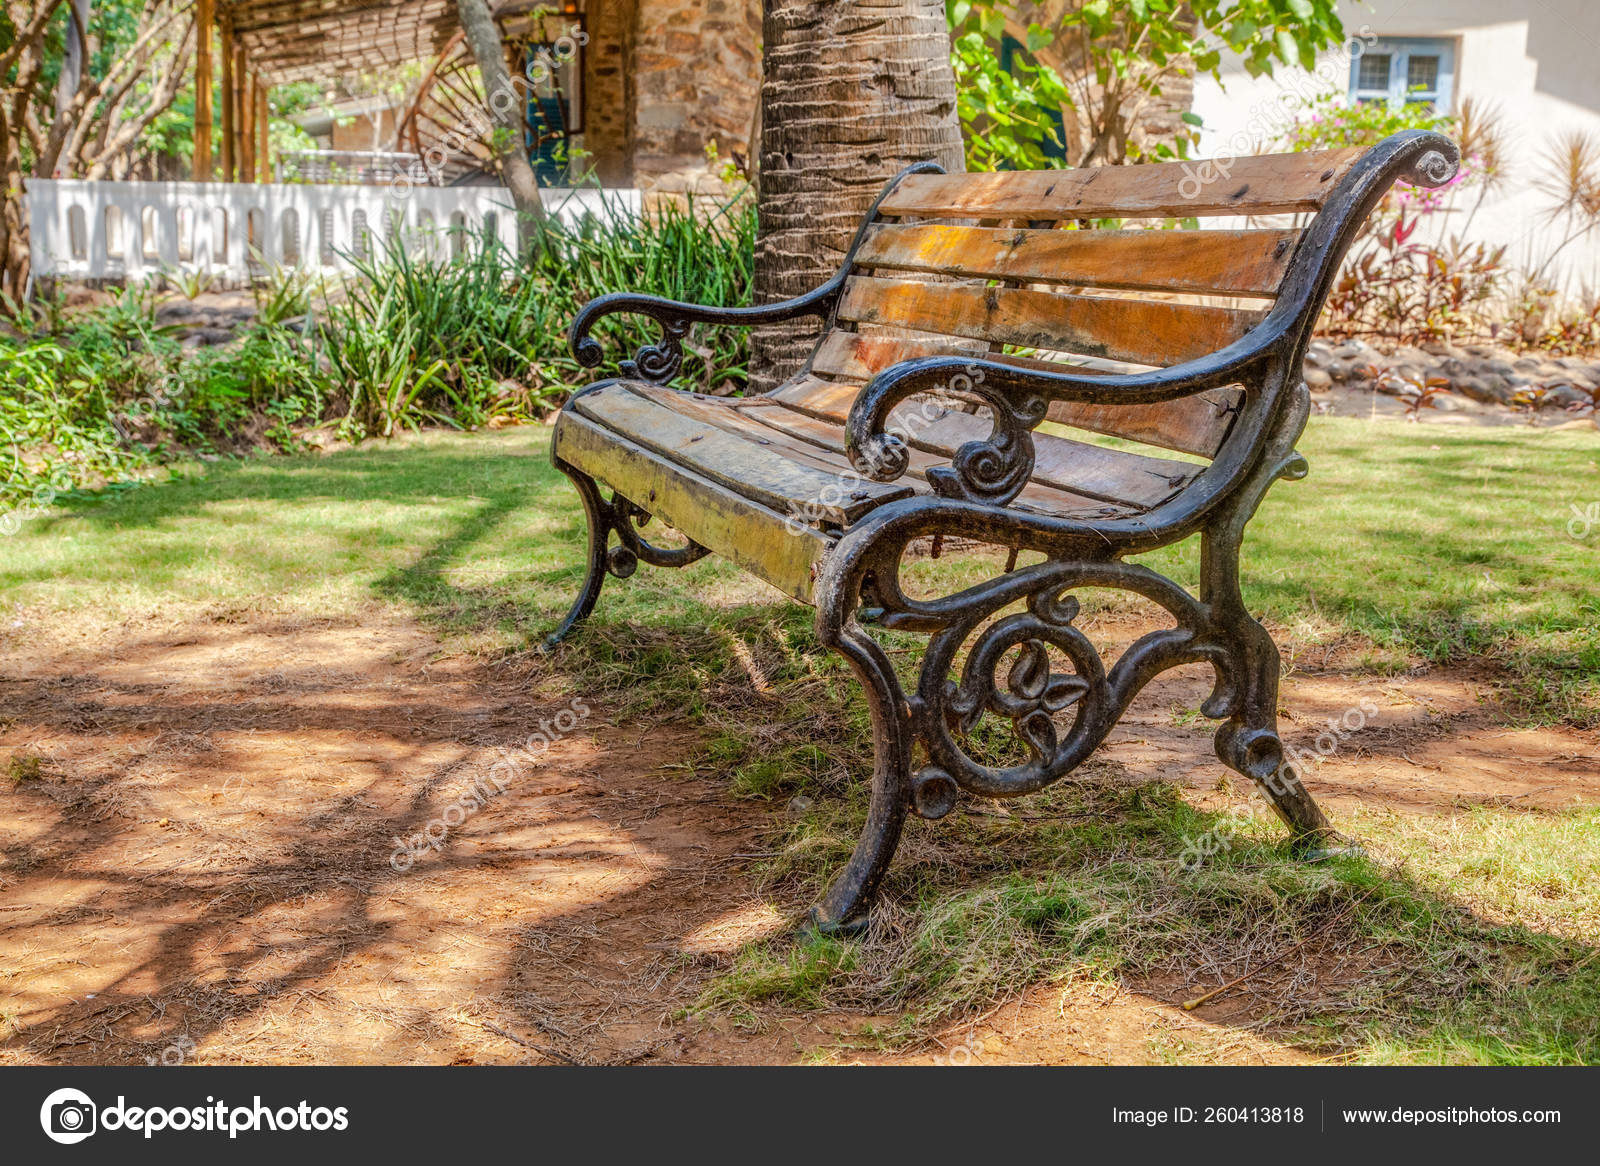 Picture of: Horizontal Color Landscape Wooden Slat Cast Iron Frame Park Bench Stock Photo C Yayimages 260413818